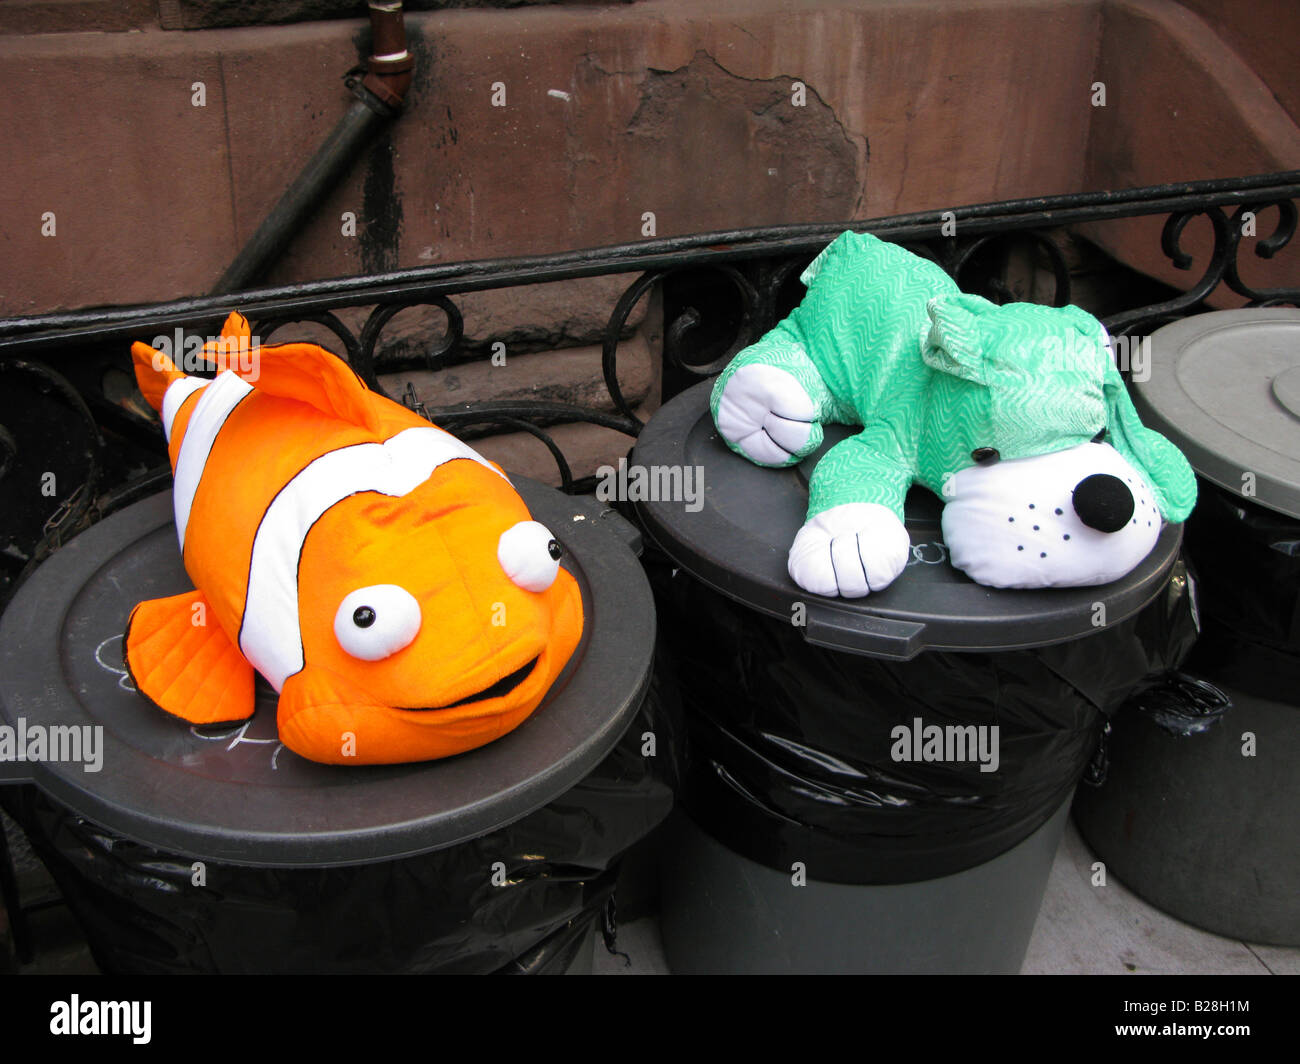 trash cans funny humour 'toy animals' - Stock Image